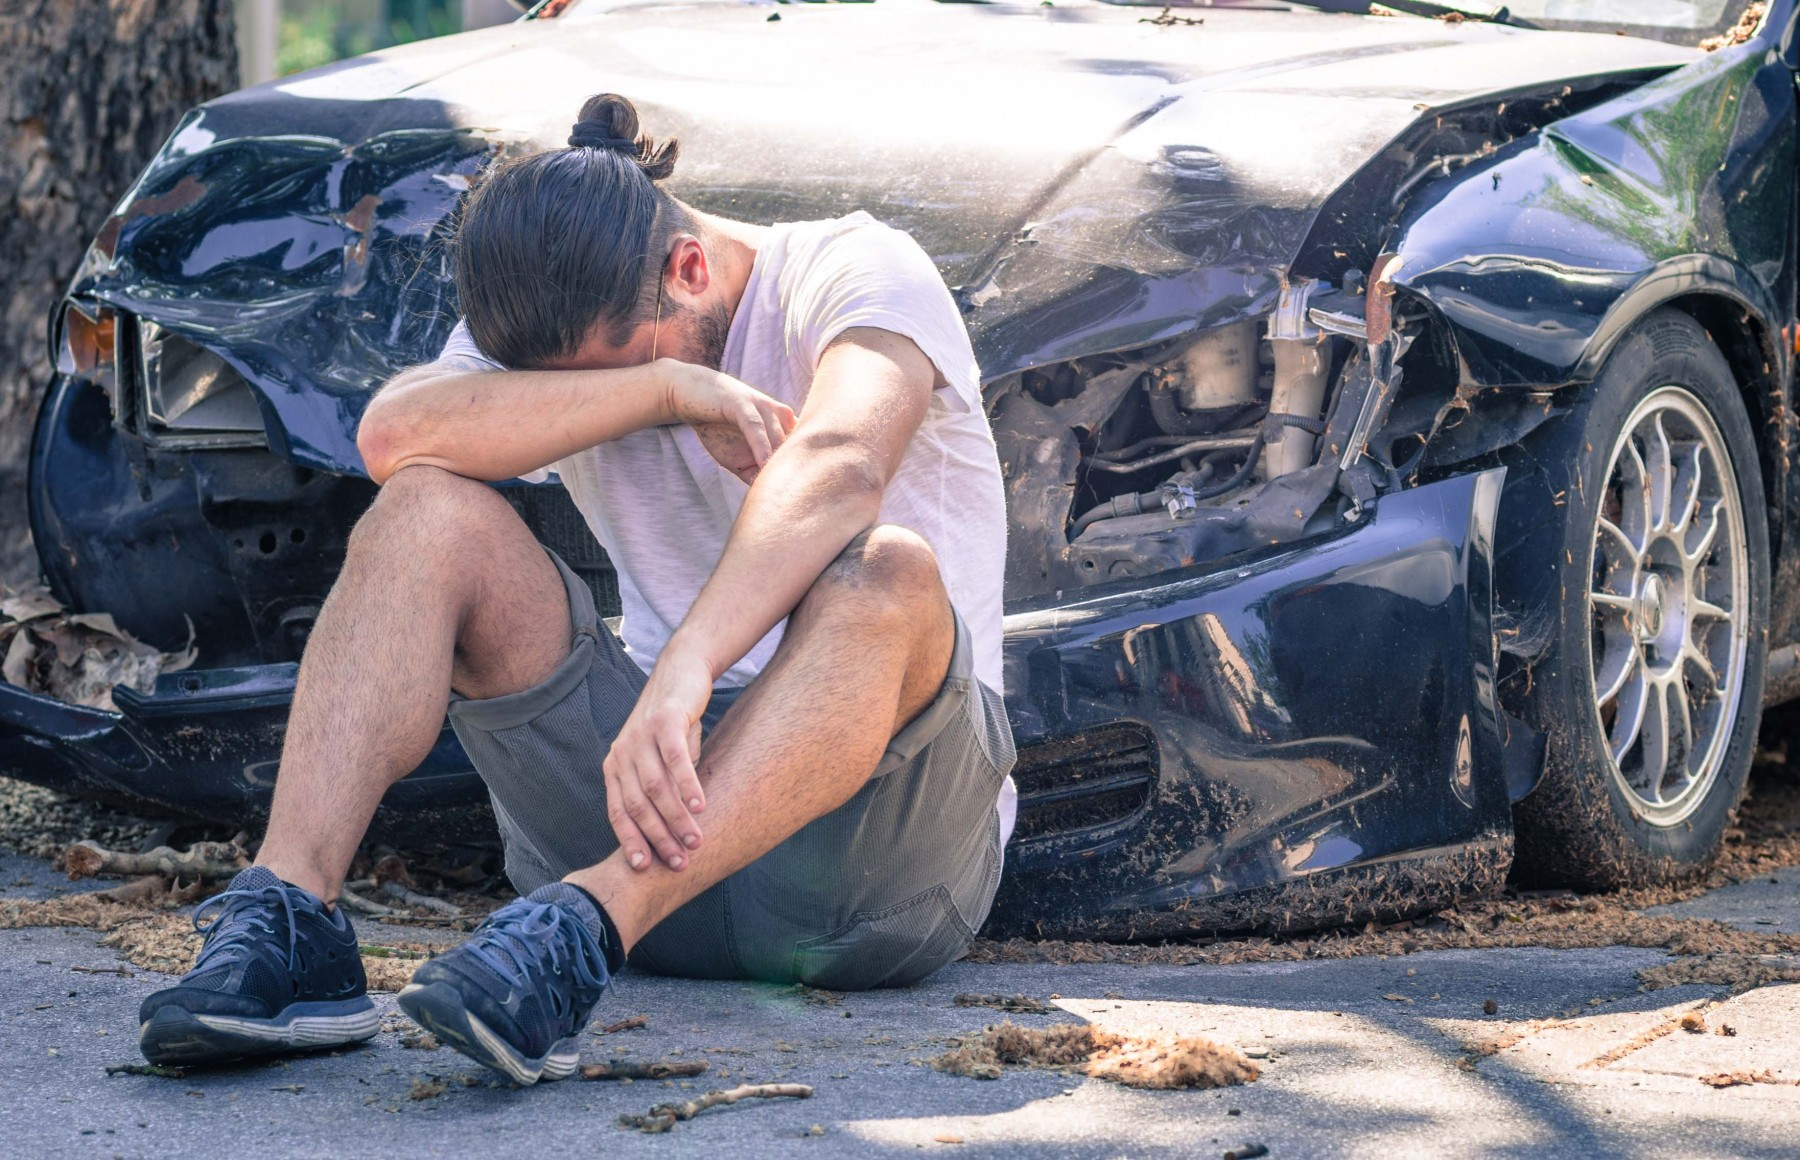 sad-car-accident-guy-e1445901572894